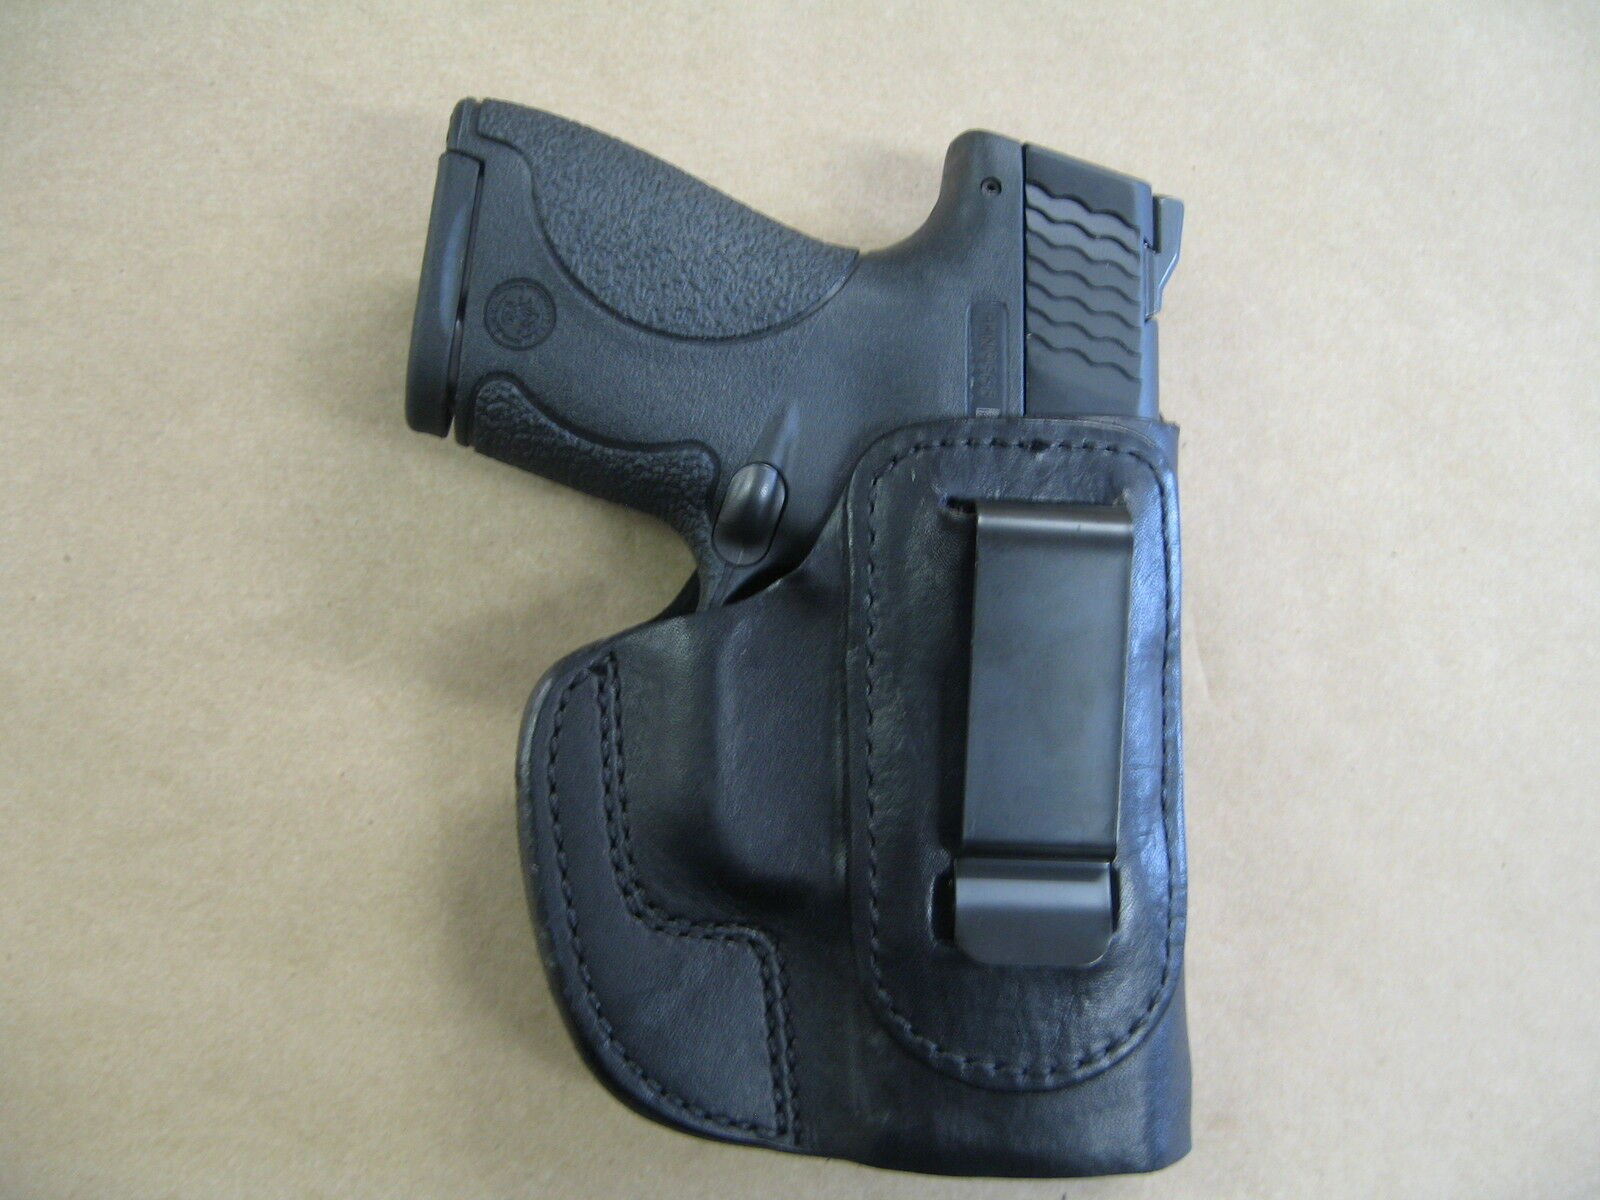 walther pps m1 m2 iwb leather in the waistband concealed carry